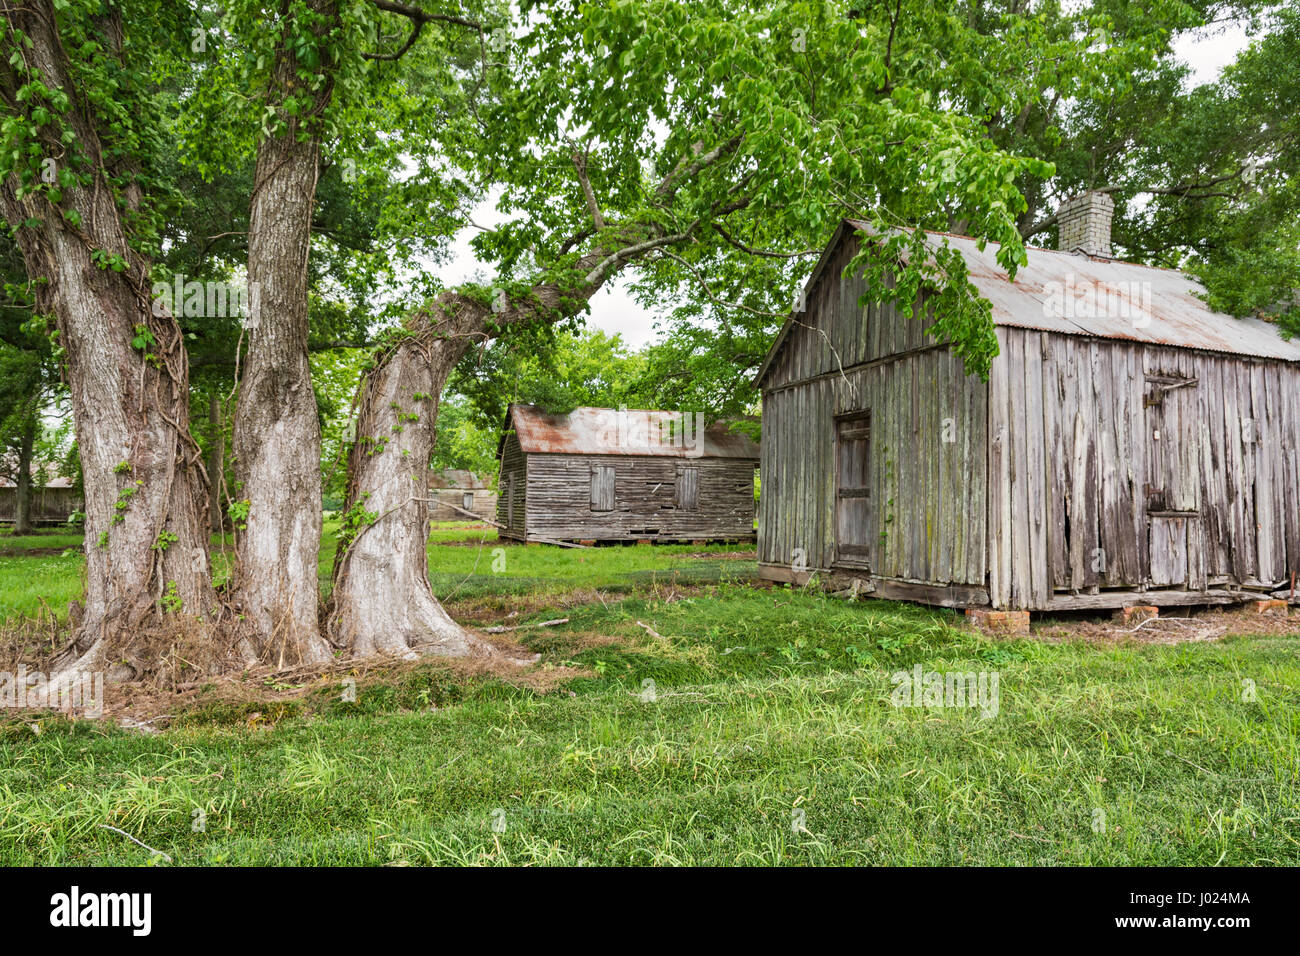 Louisiana, Thibodaux, Laurel Valley Village, sugar plantation museum - Stock Image